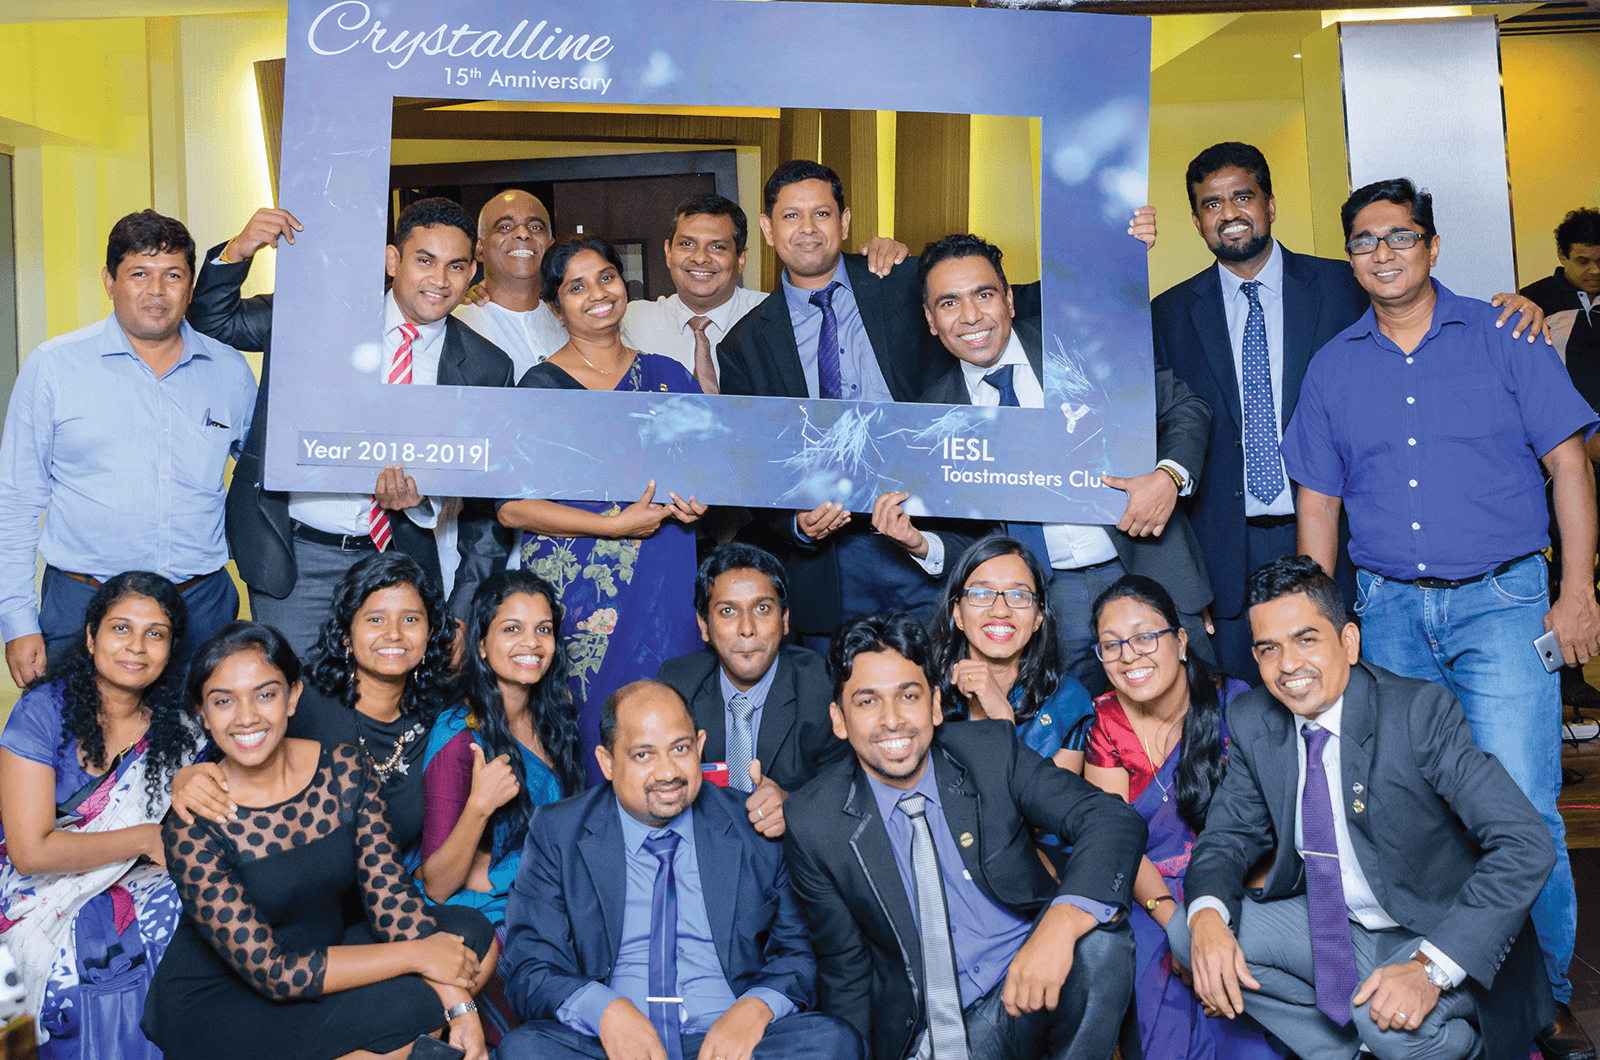 IESL Toastmasters of Colombo, Sri Lanka, celebrate their 15th anniversary at the Institution of Engineers Sri Lanka with current and charter members.